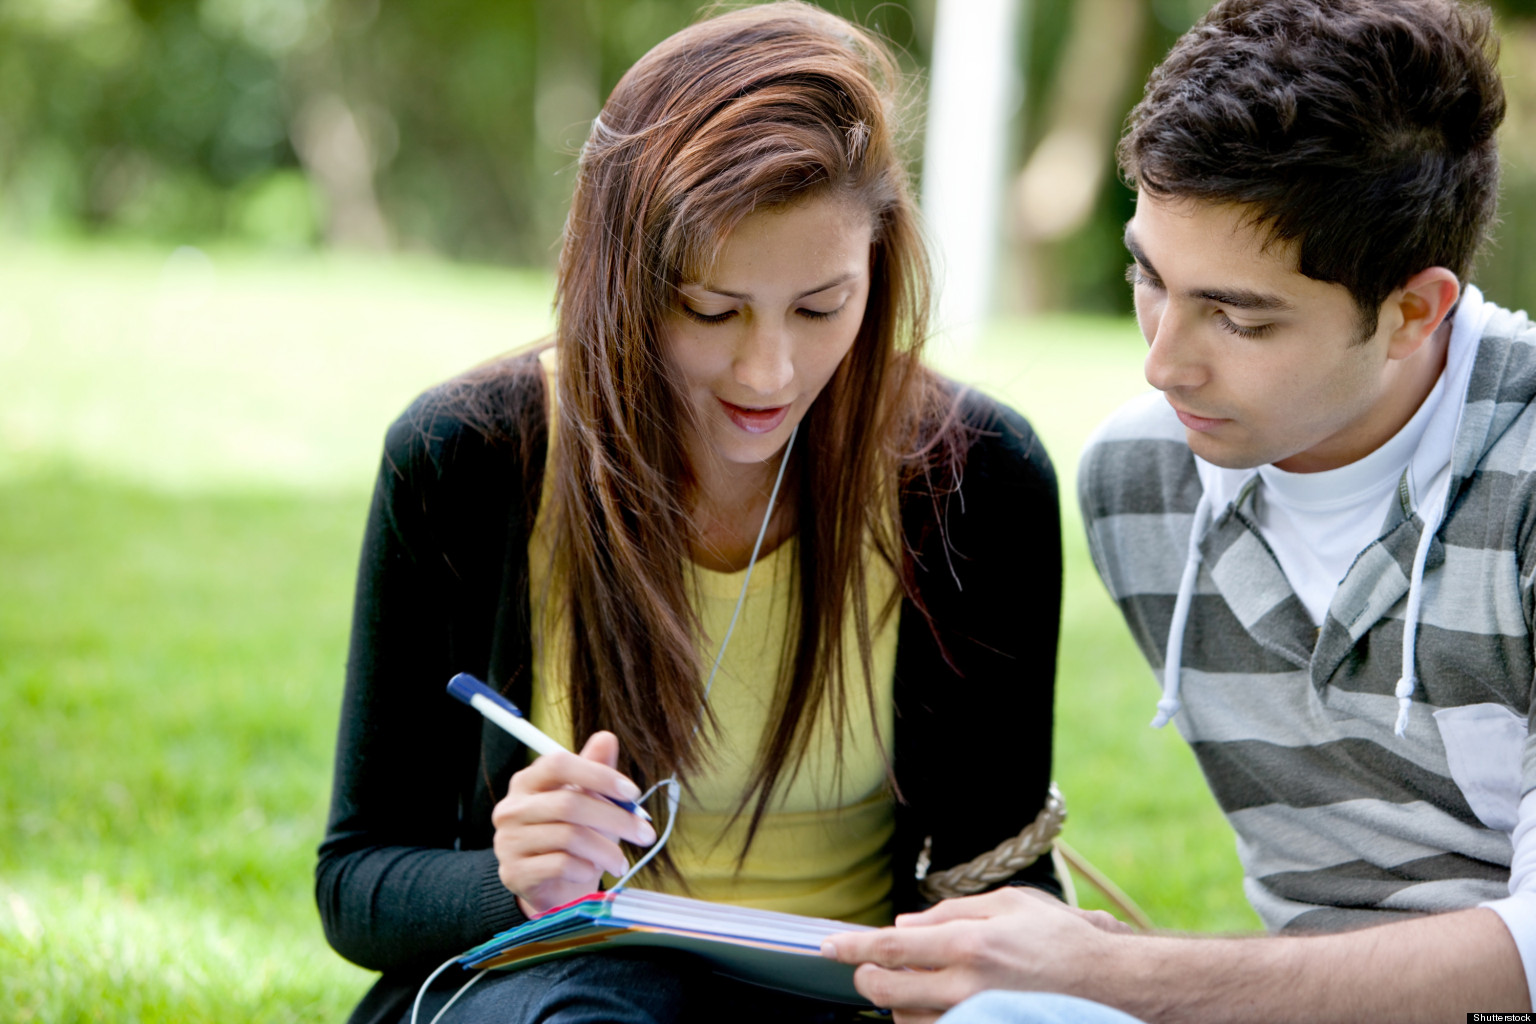 student friendship essay Friendship essay writing help a friendship essay can be a difficult topic to write on and an overloaded and stresses student may not have the time to finish it on their own.